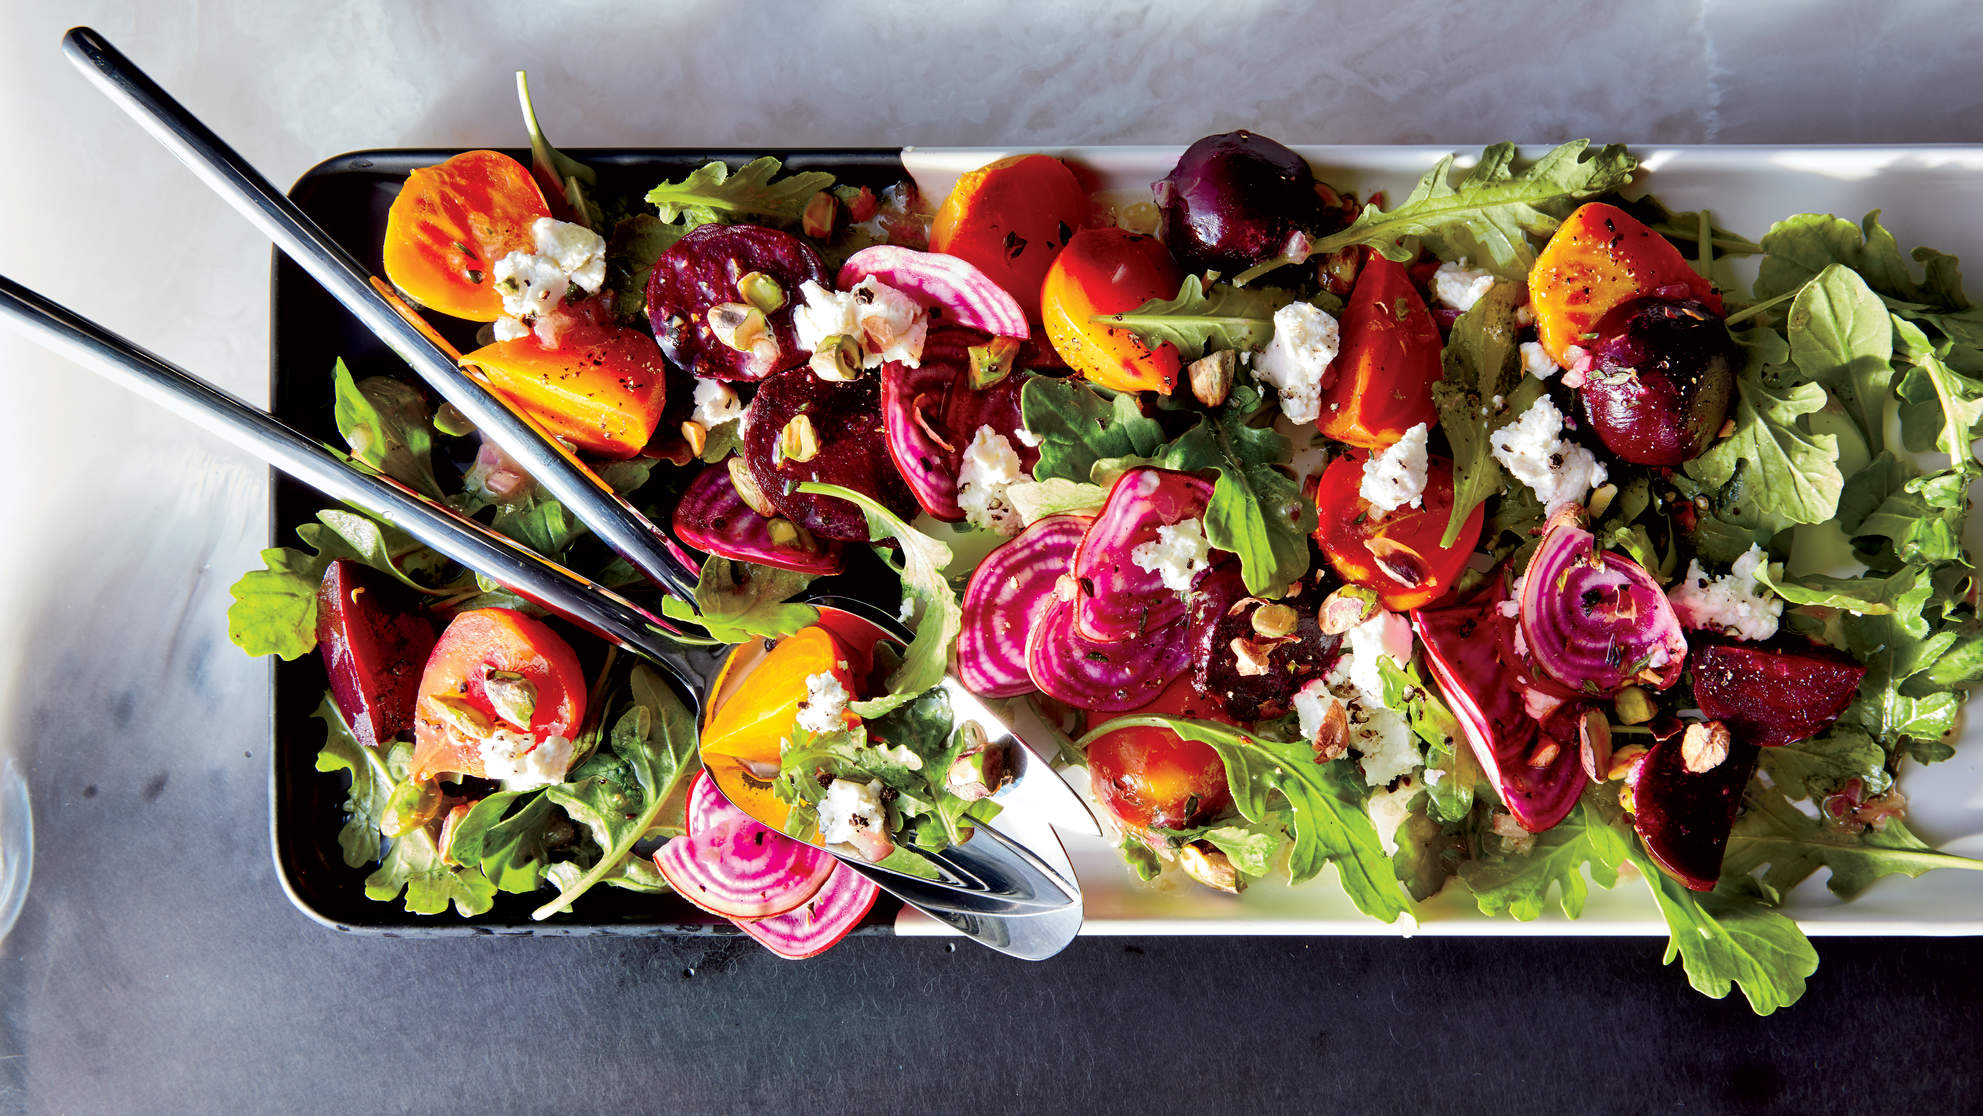 triple-beet-salad-pistachios-goat-cheese-recipe